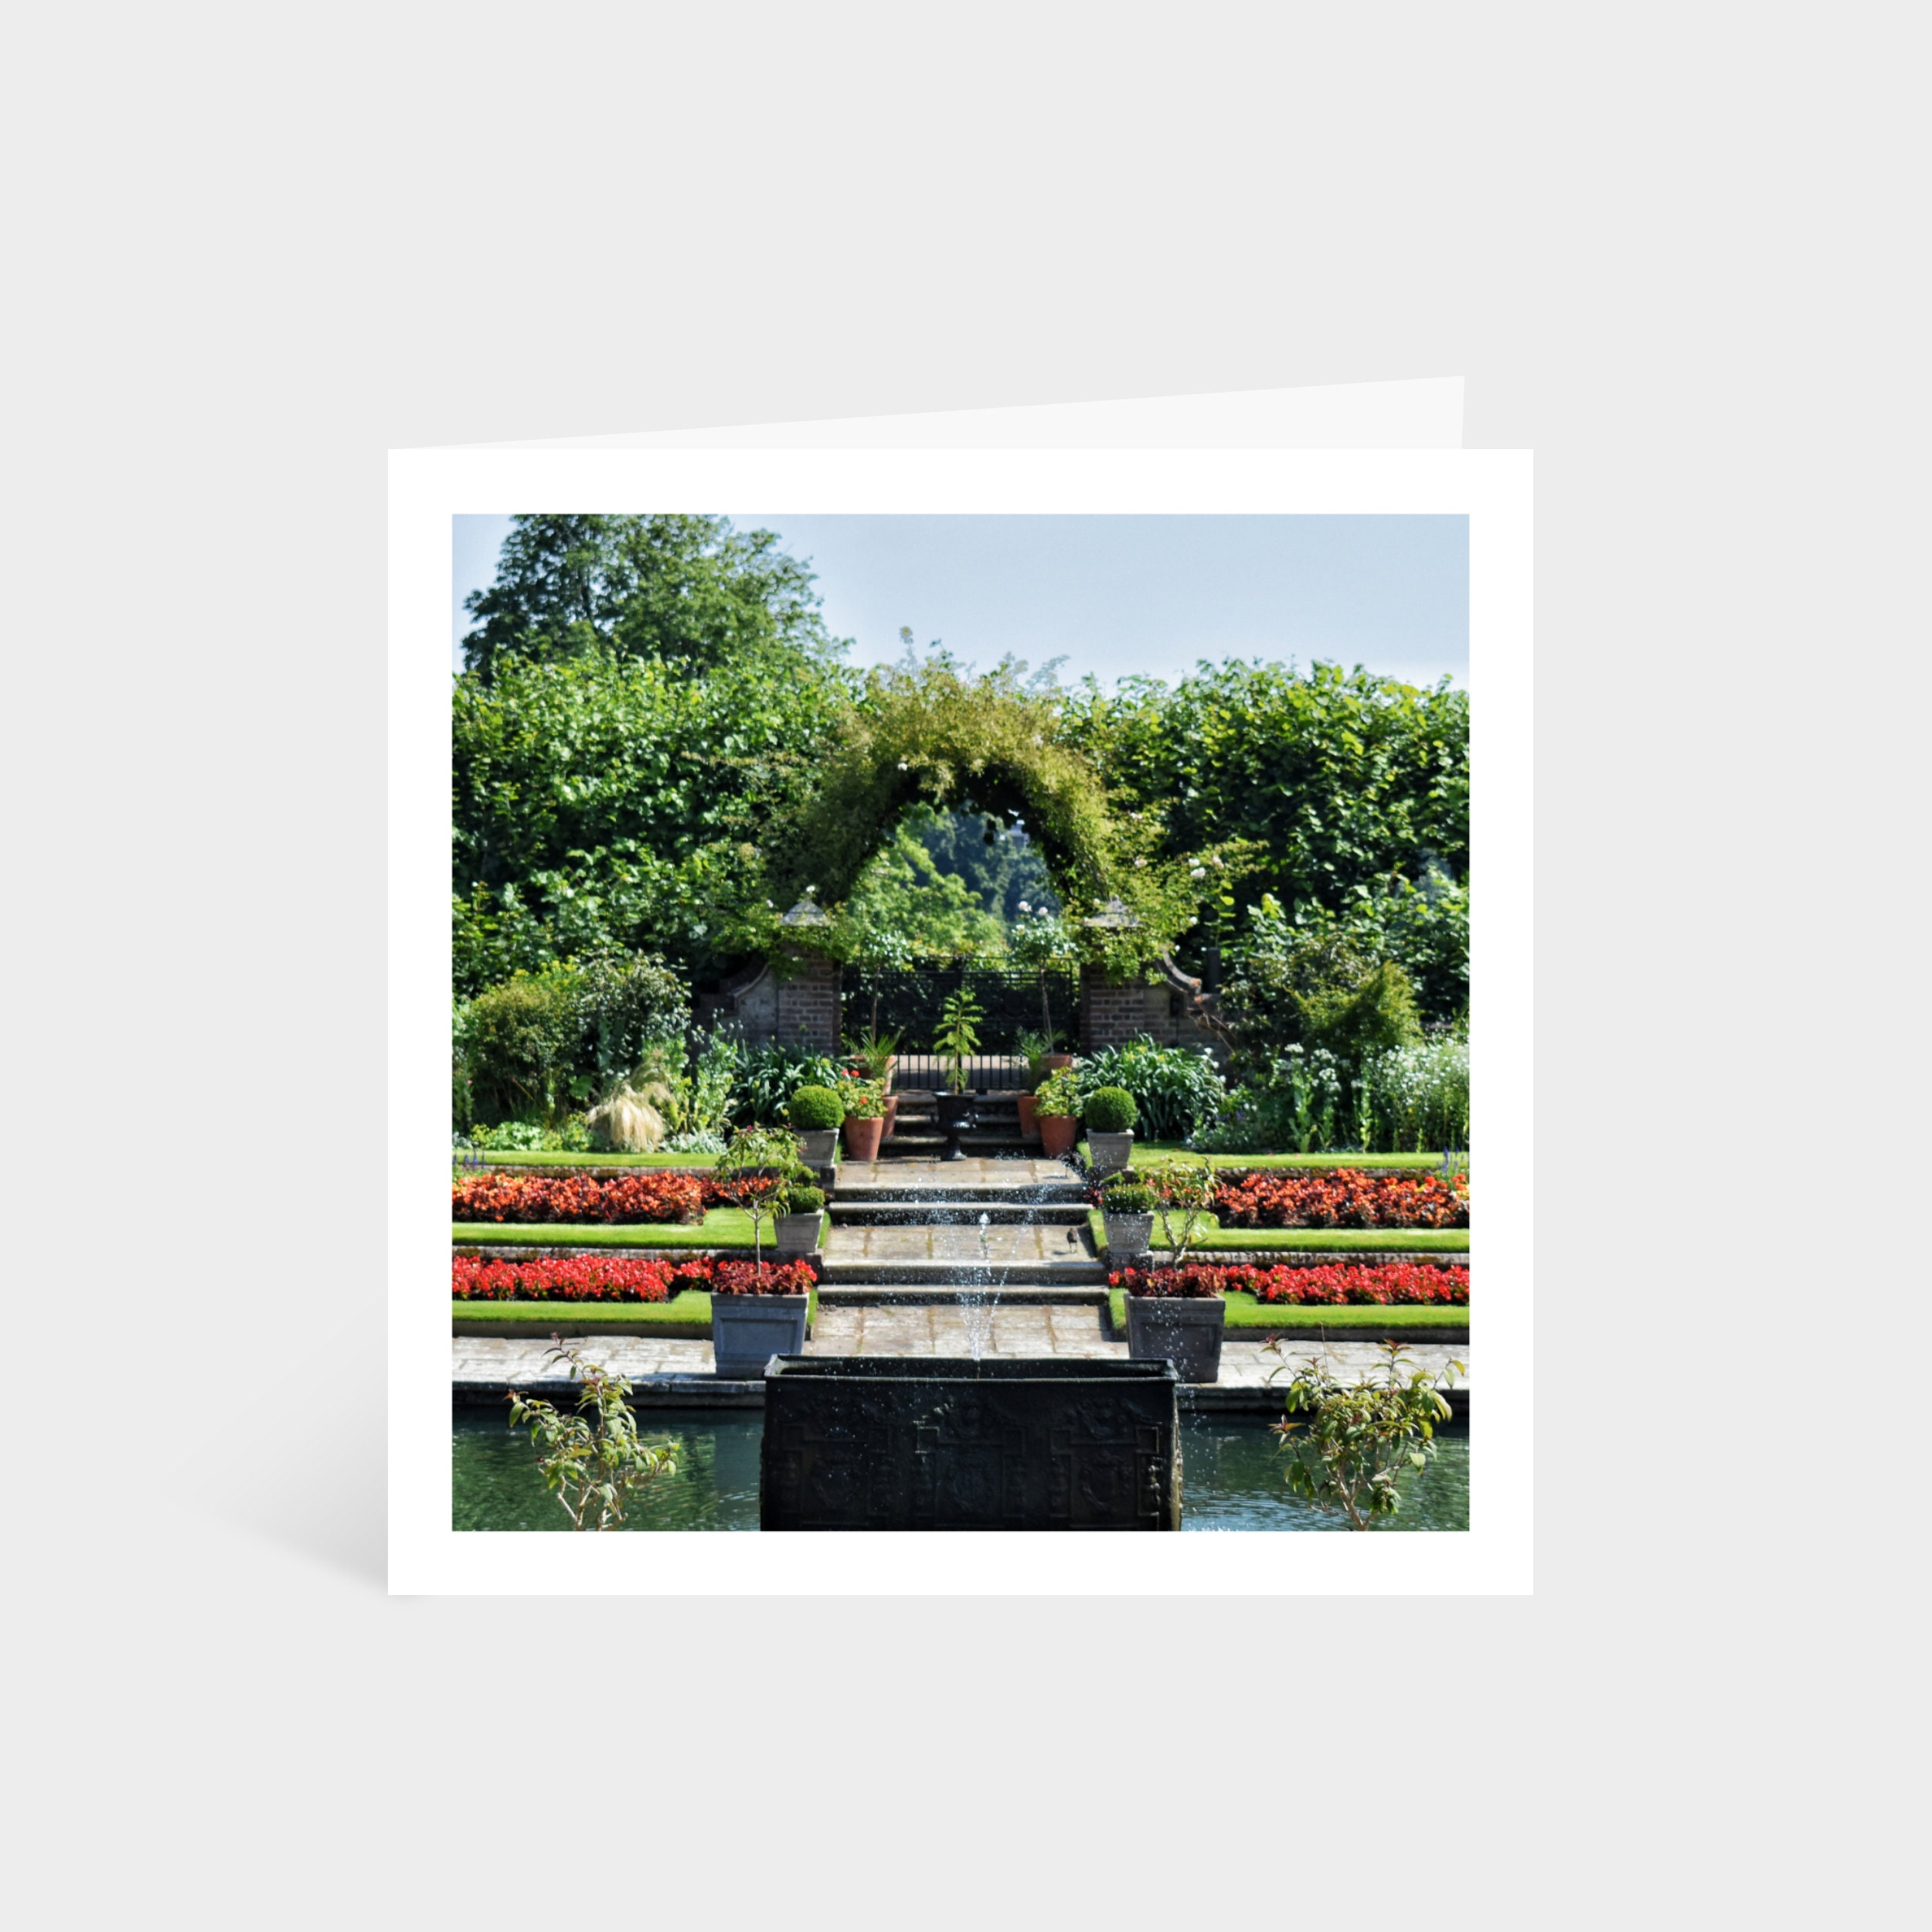 Standing square card with a close up photo of a sunny garden in Kensington Palace